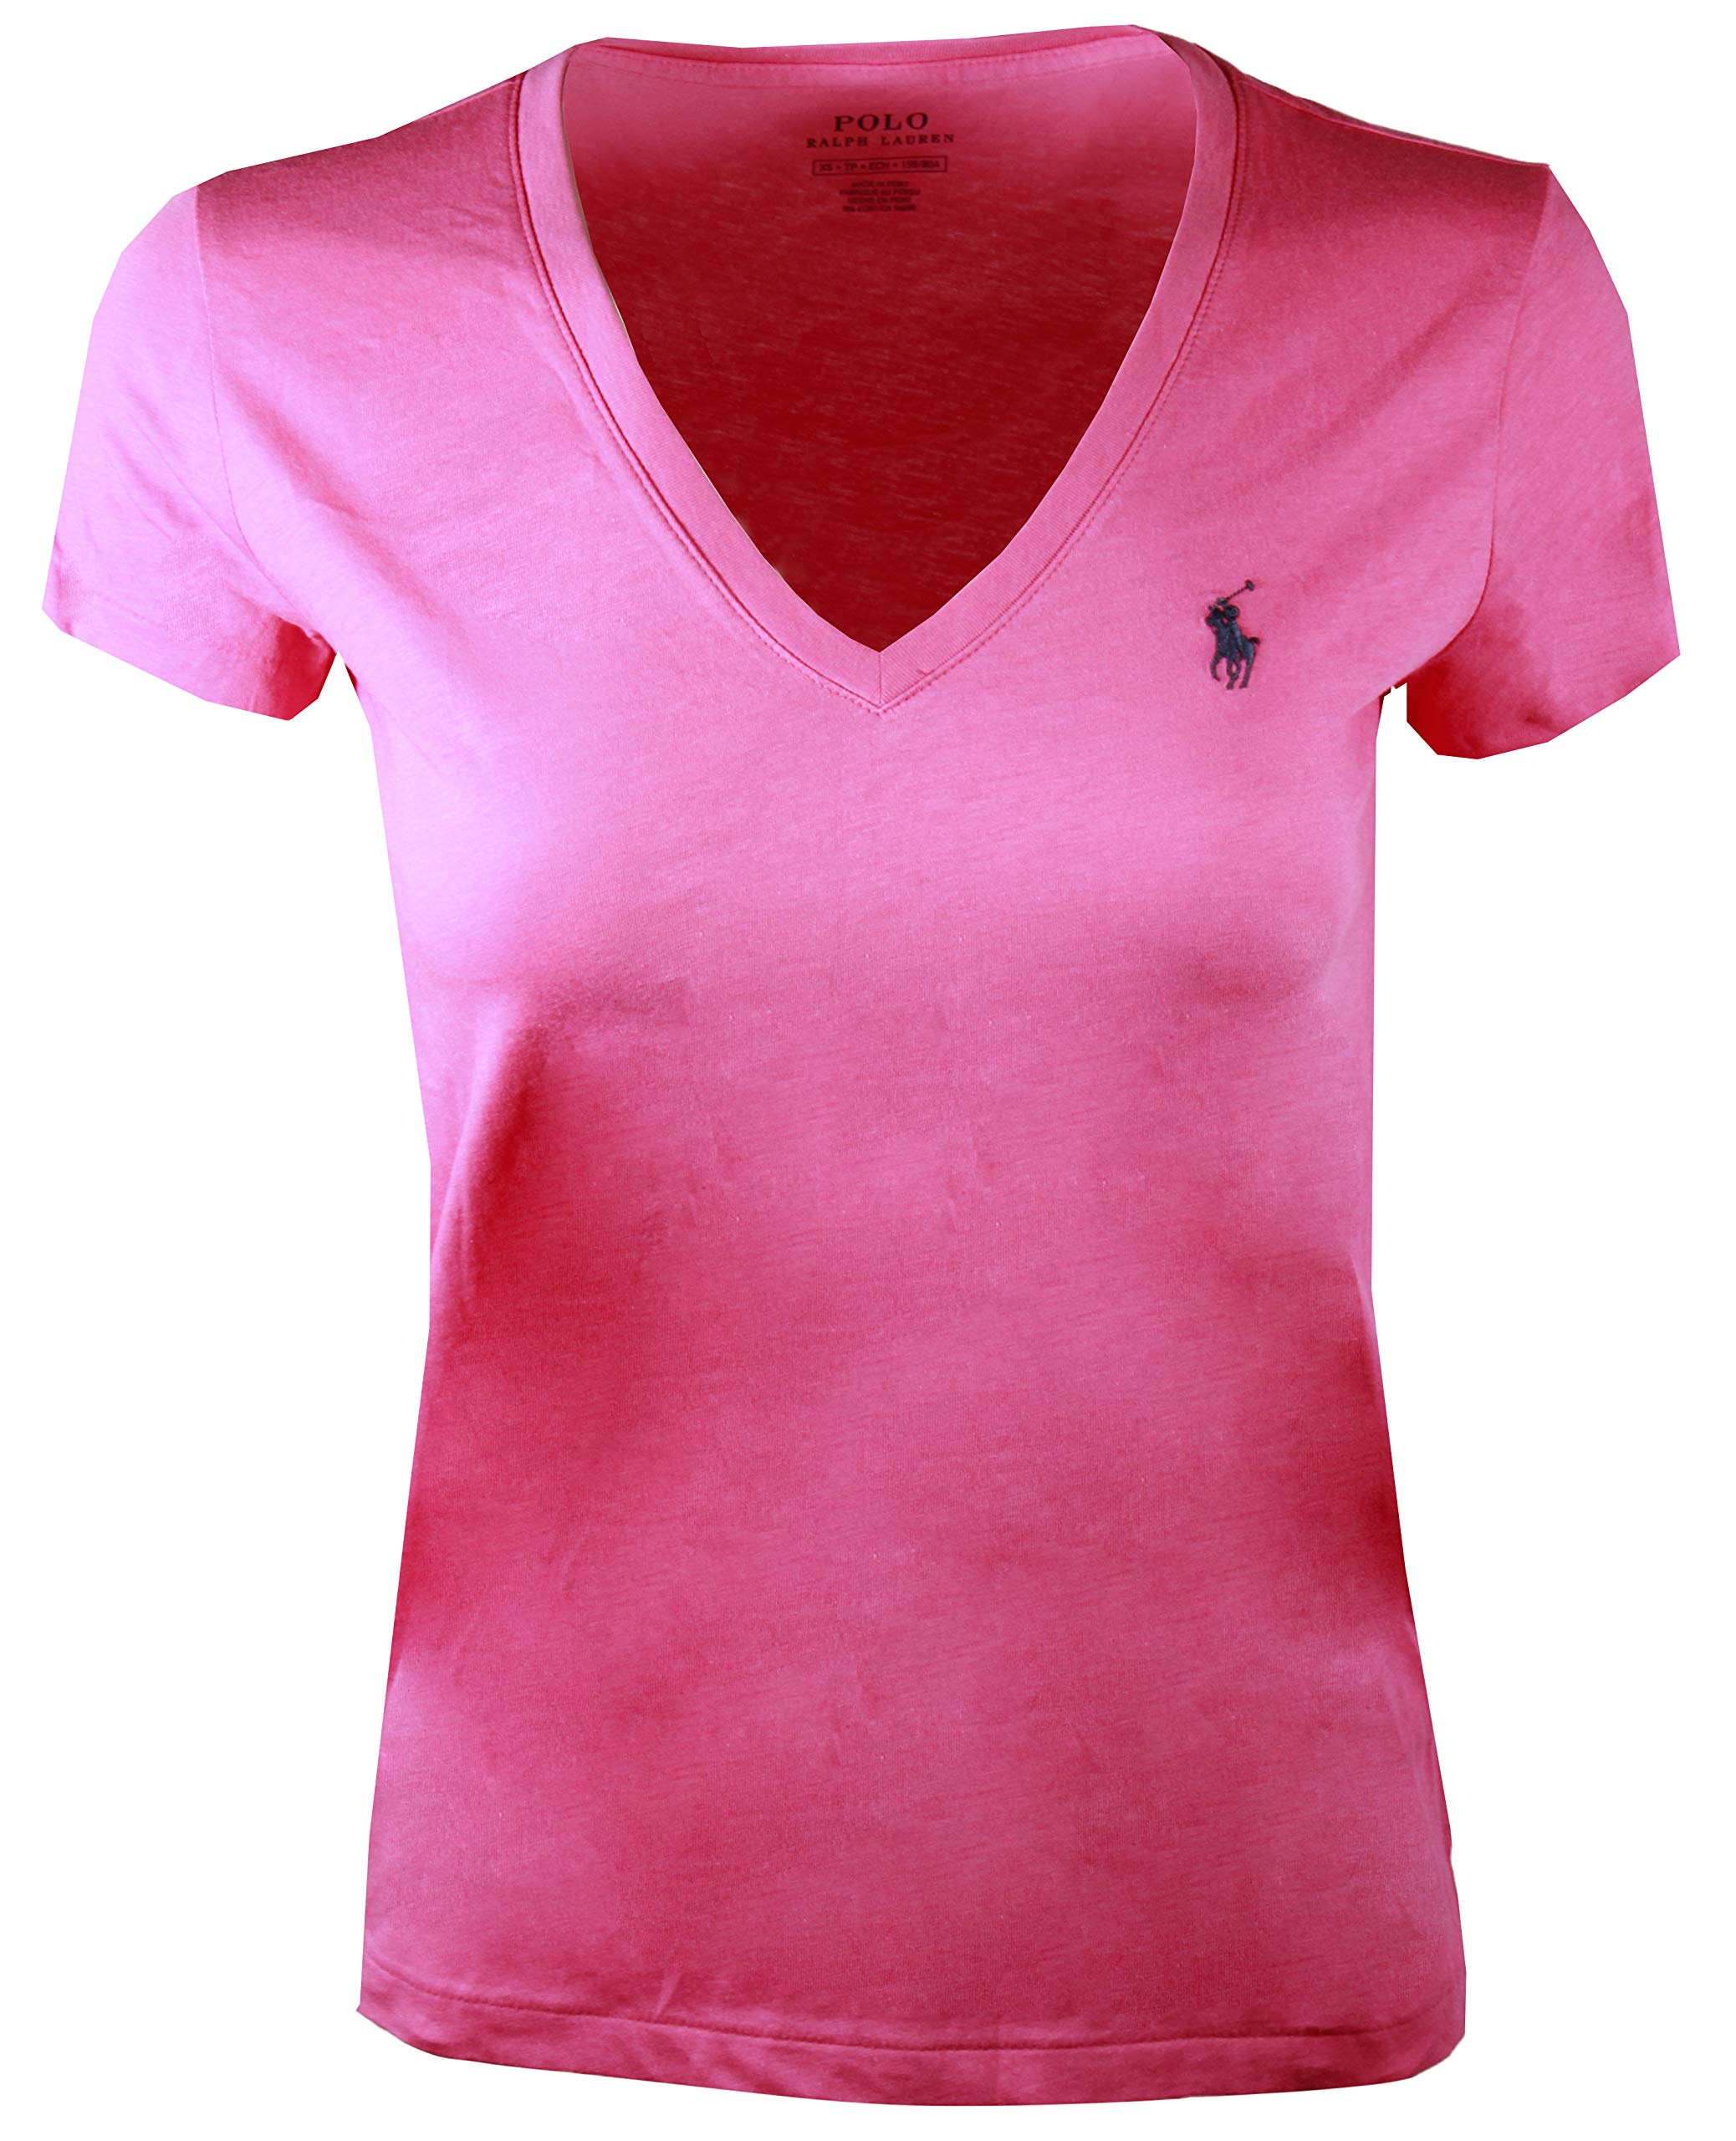 Polo Ralph Lauren Women S Pony Logo V Neck Tee X Small Hot Pink